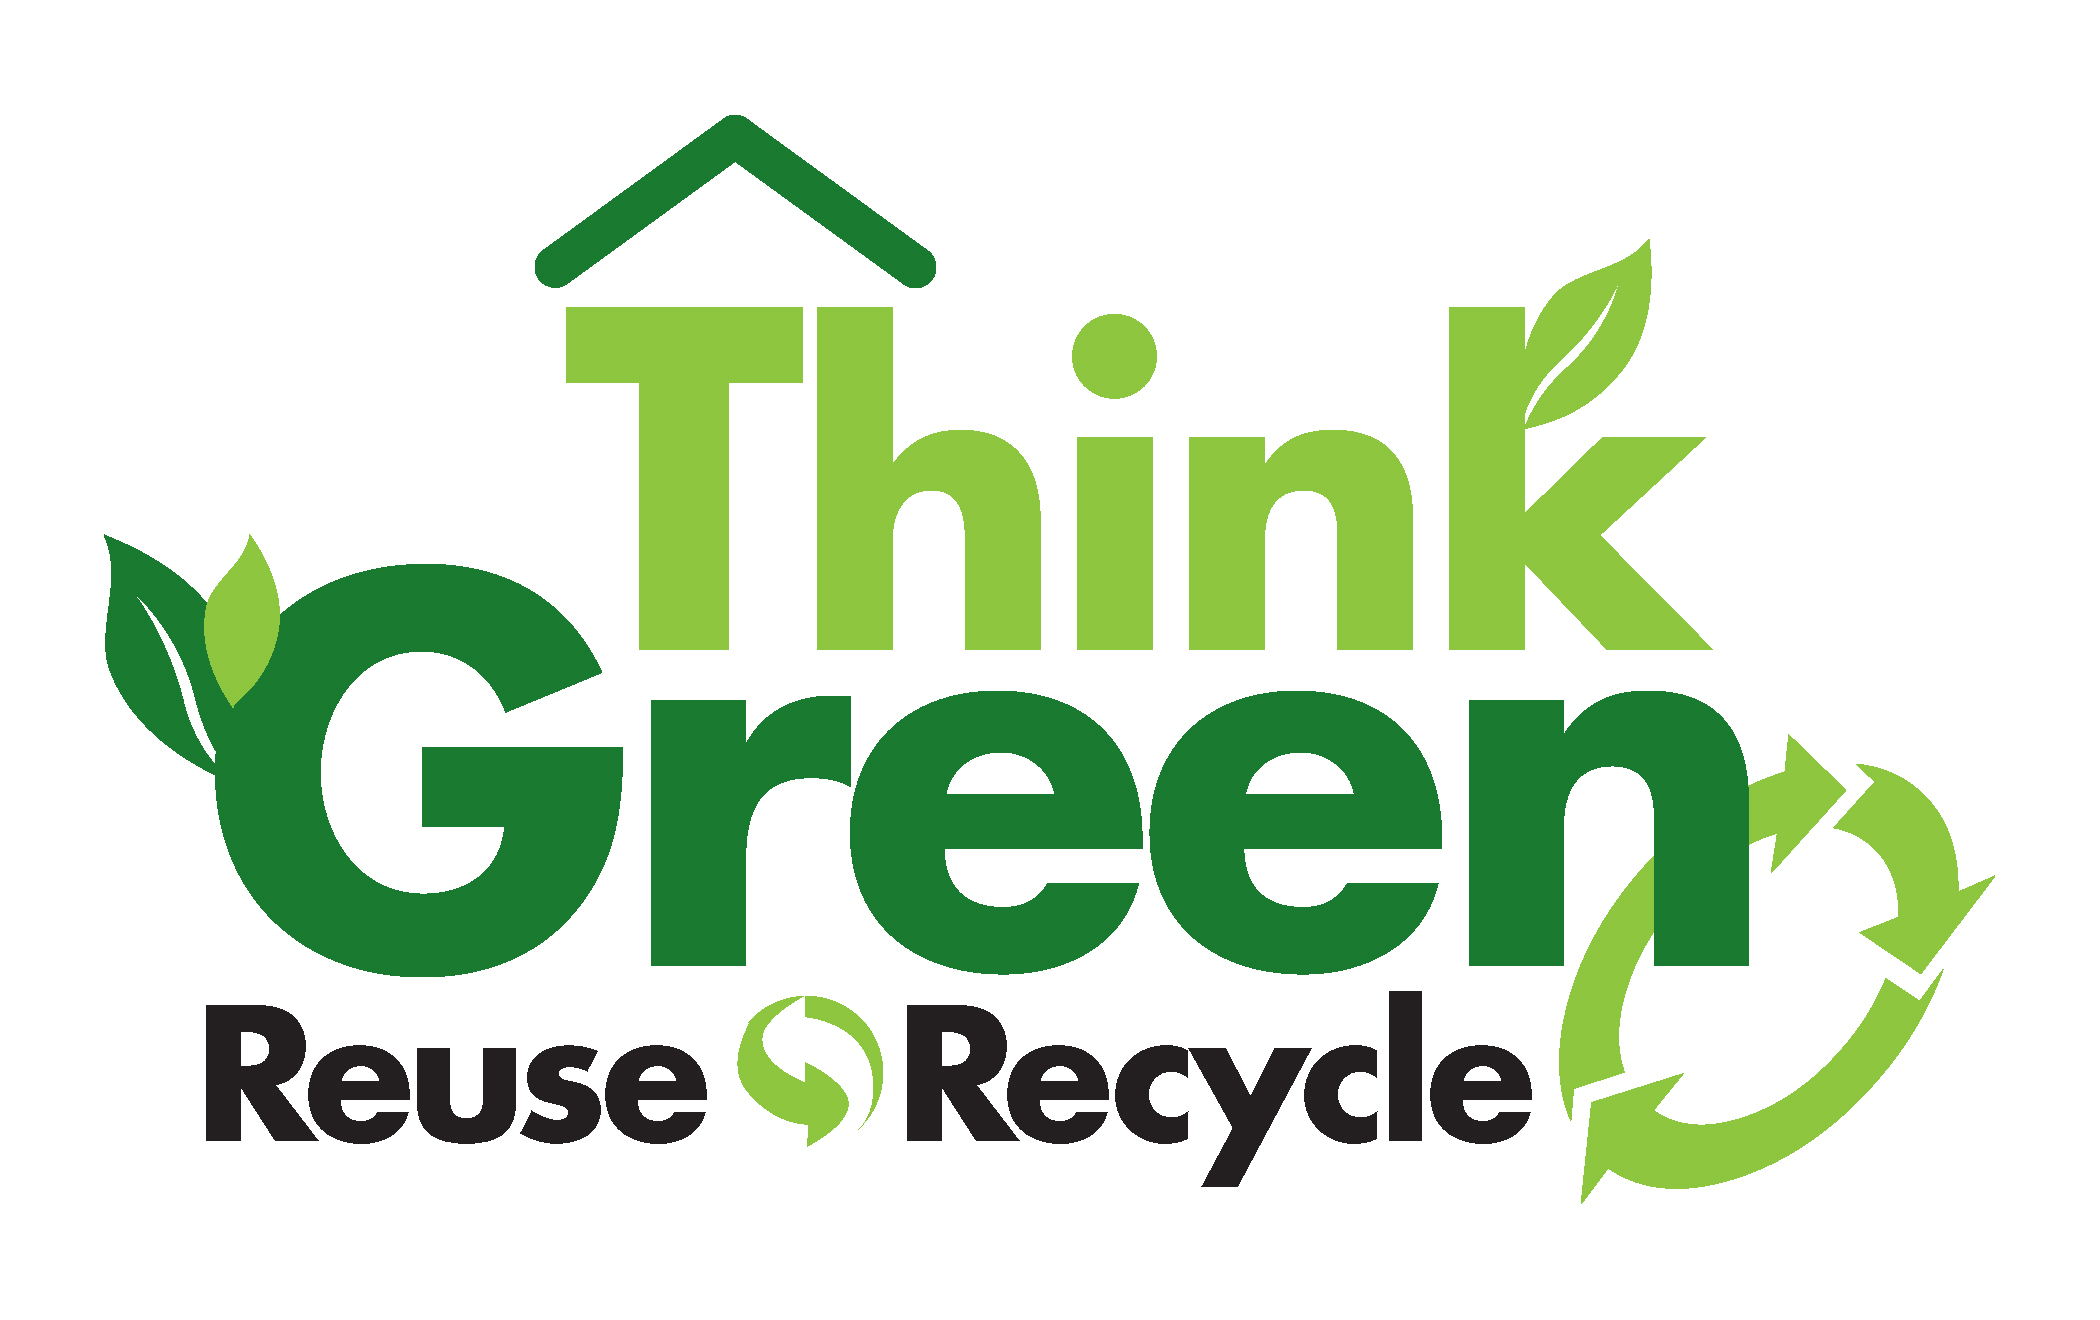 Changes To Recycling Clothes And Textiles In Your Green Bins